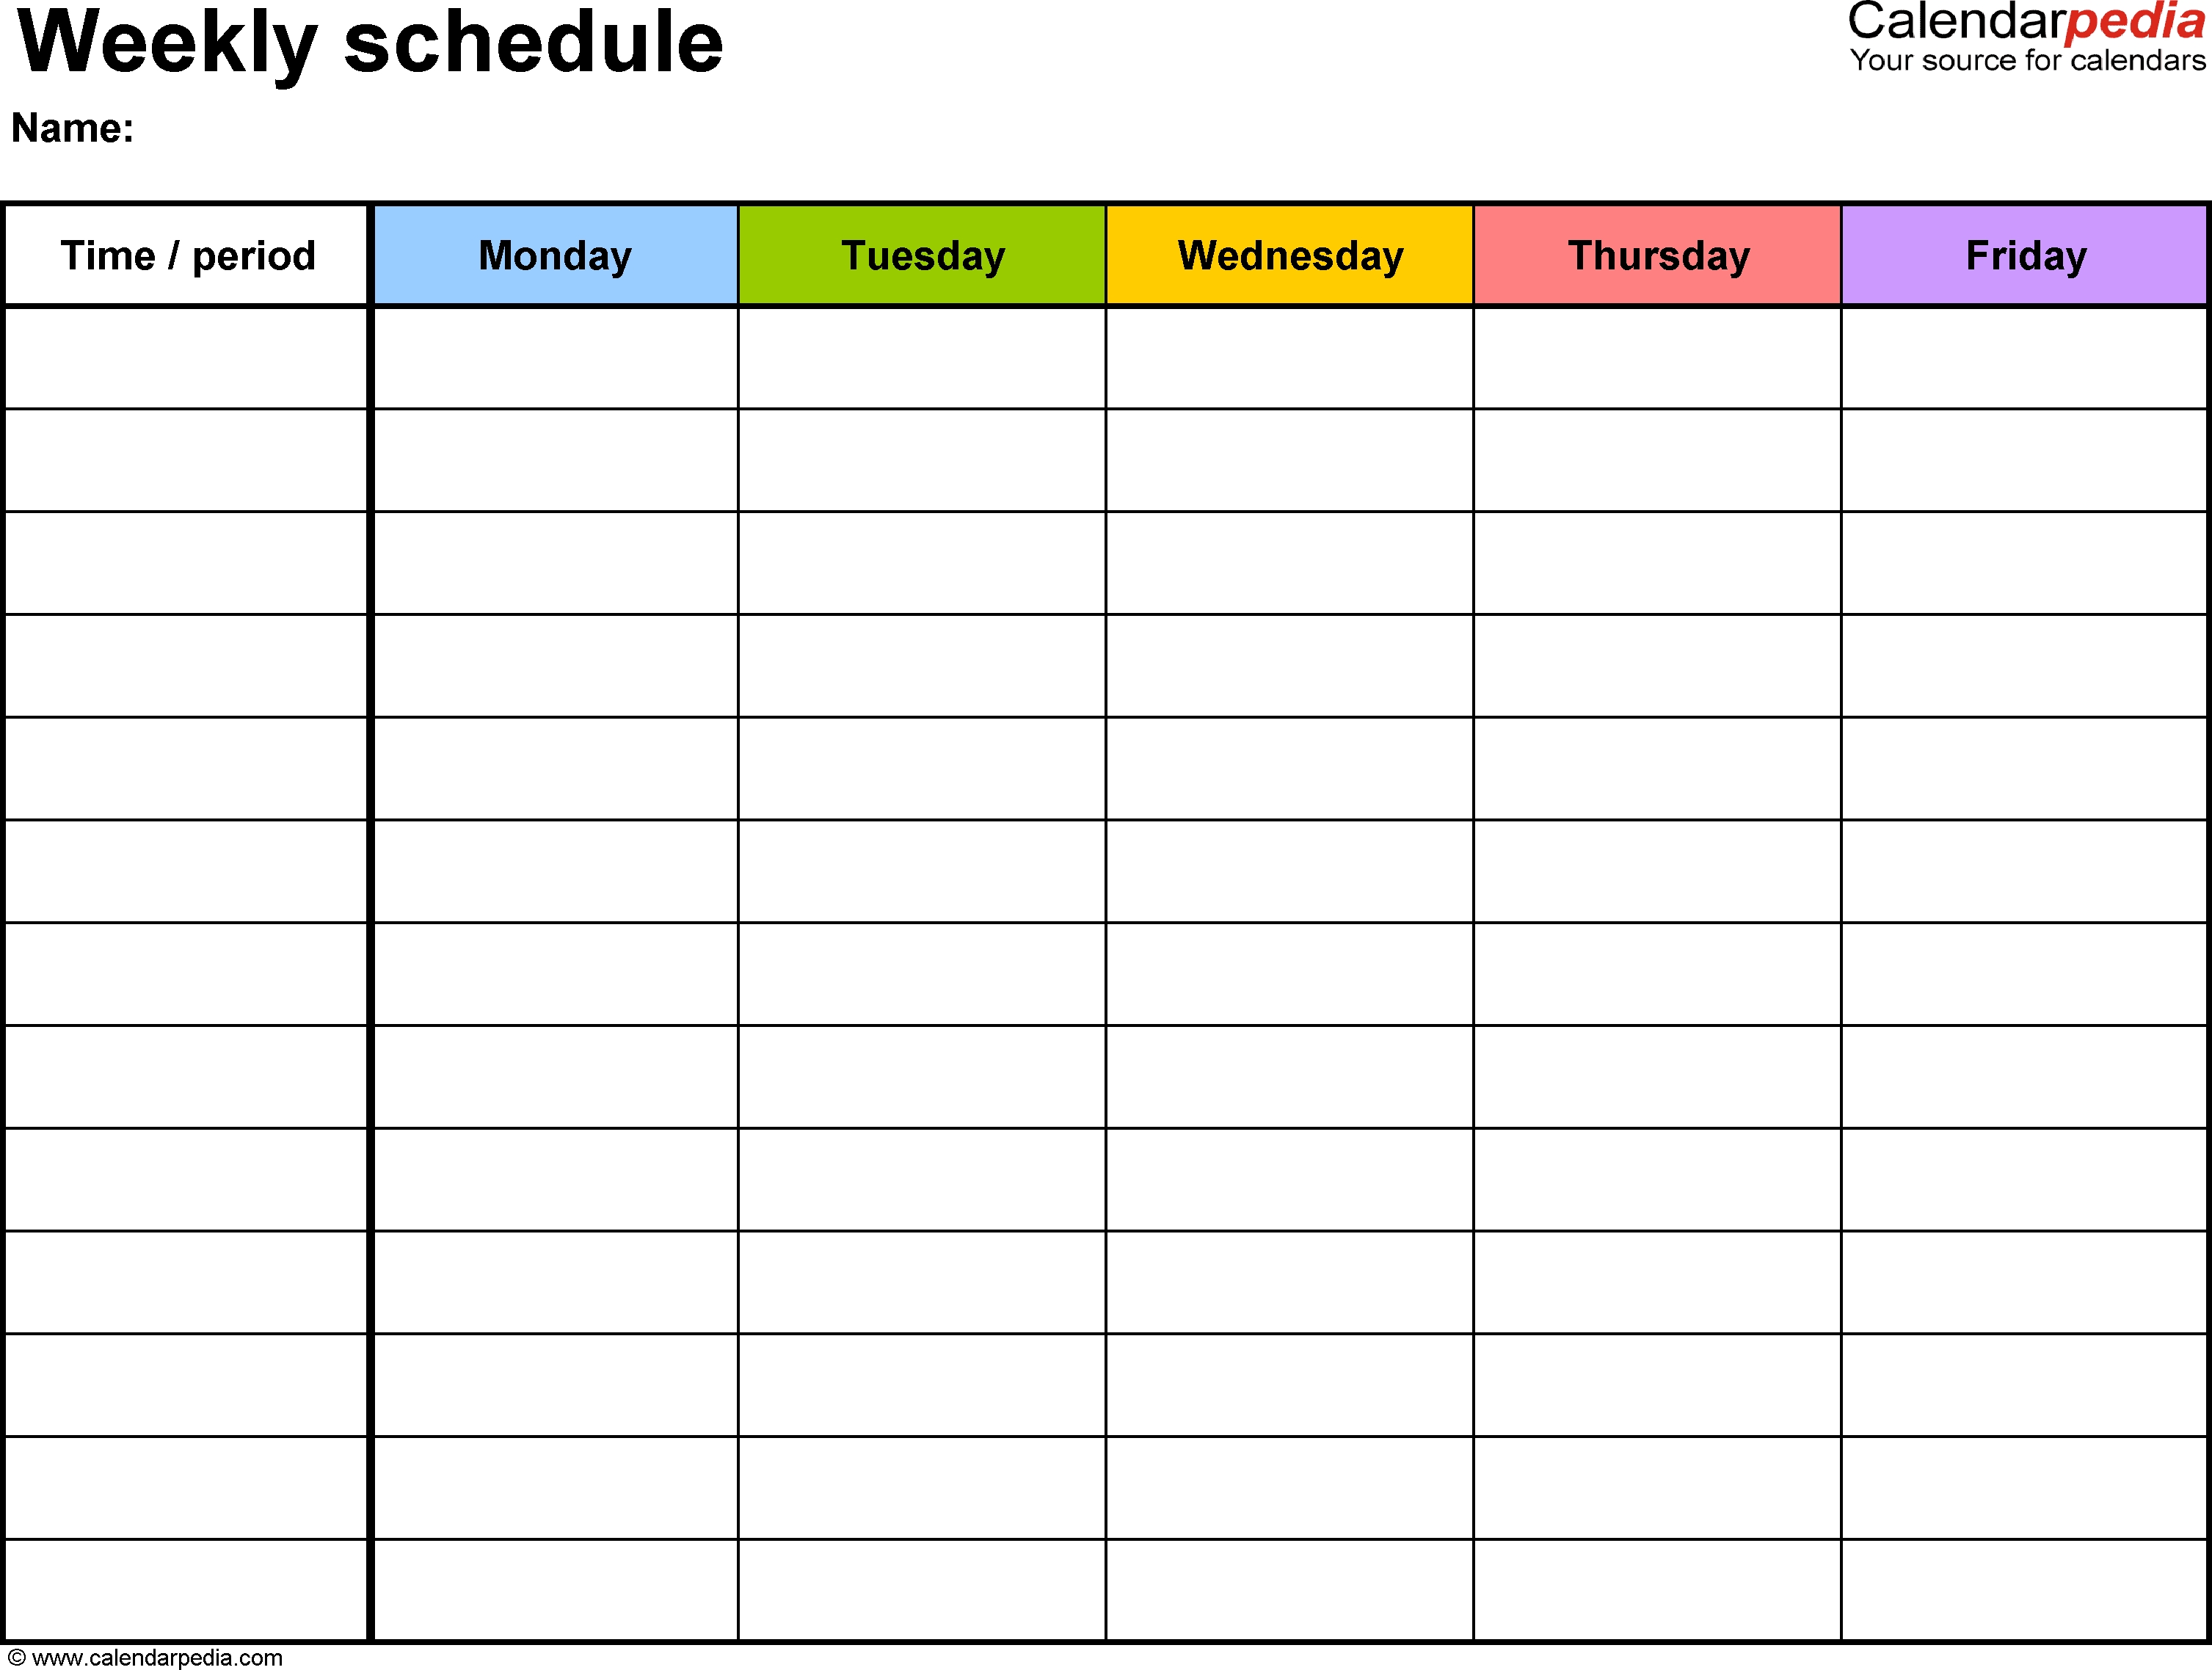 Weekly Schedule Template For Word Version 1: Landscape, 1-Countdown Calendar Template For Excel